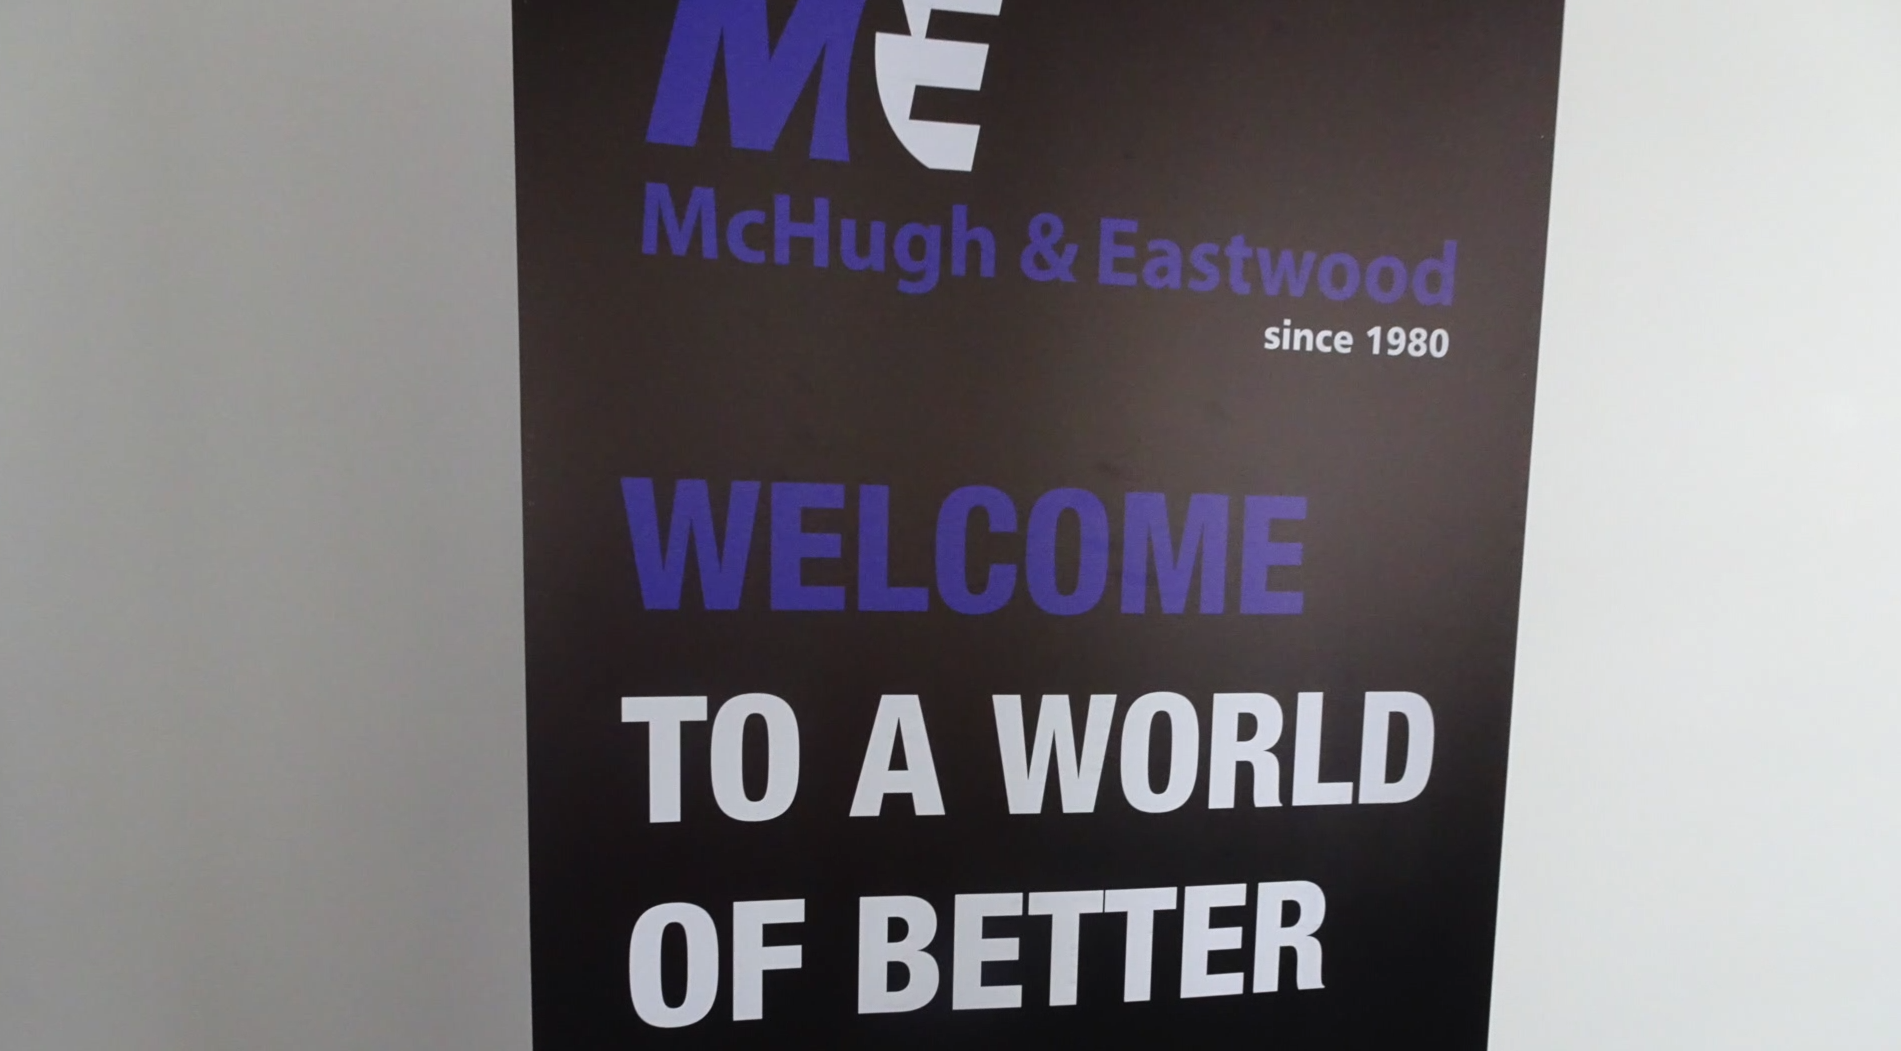 Mchugh and Eastwood Banner